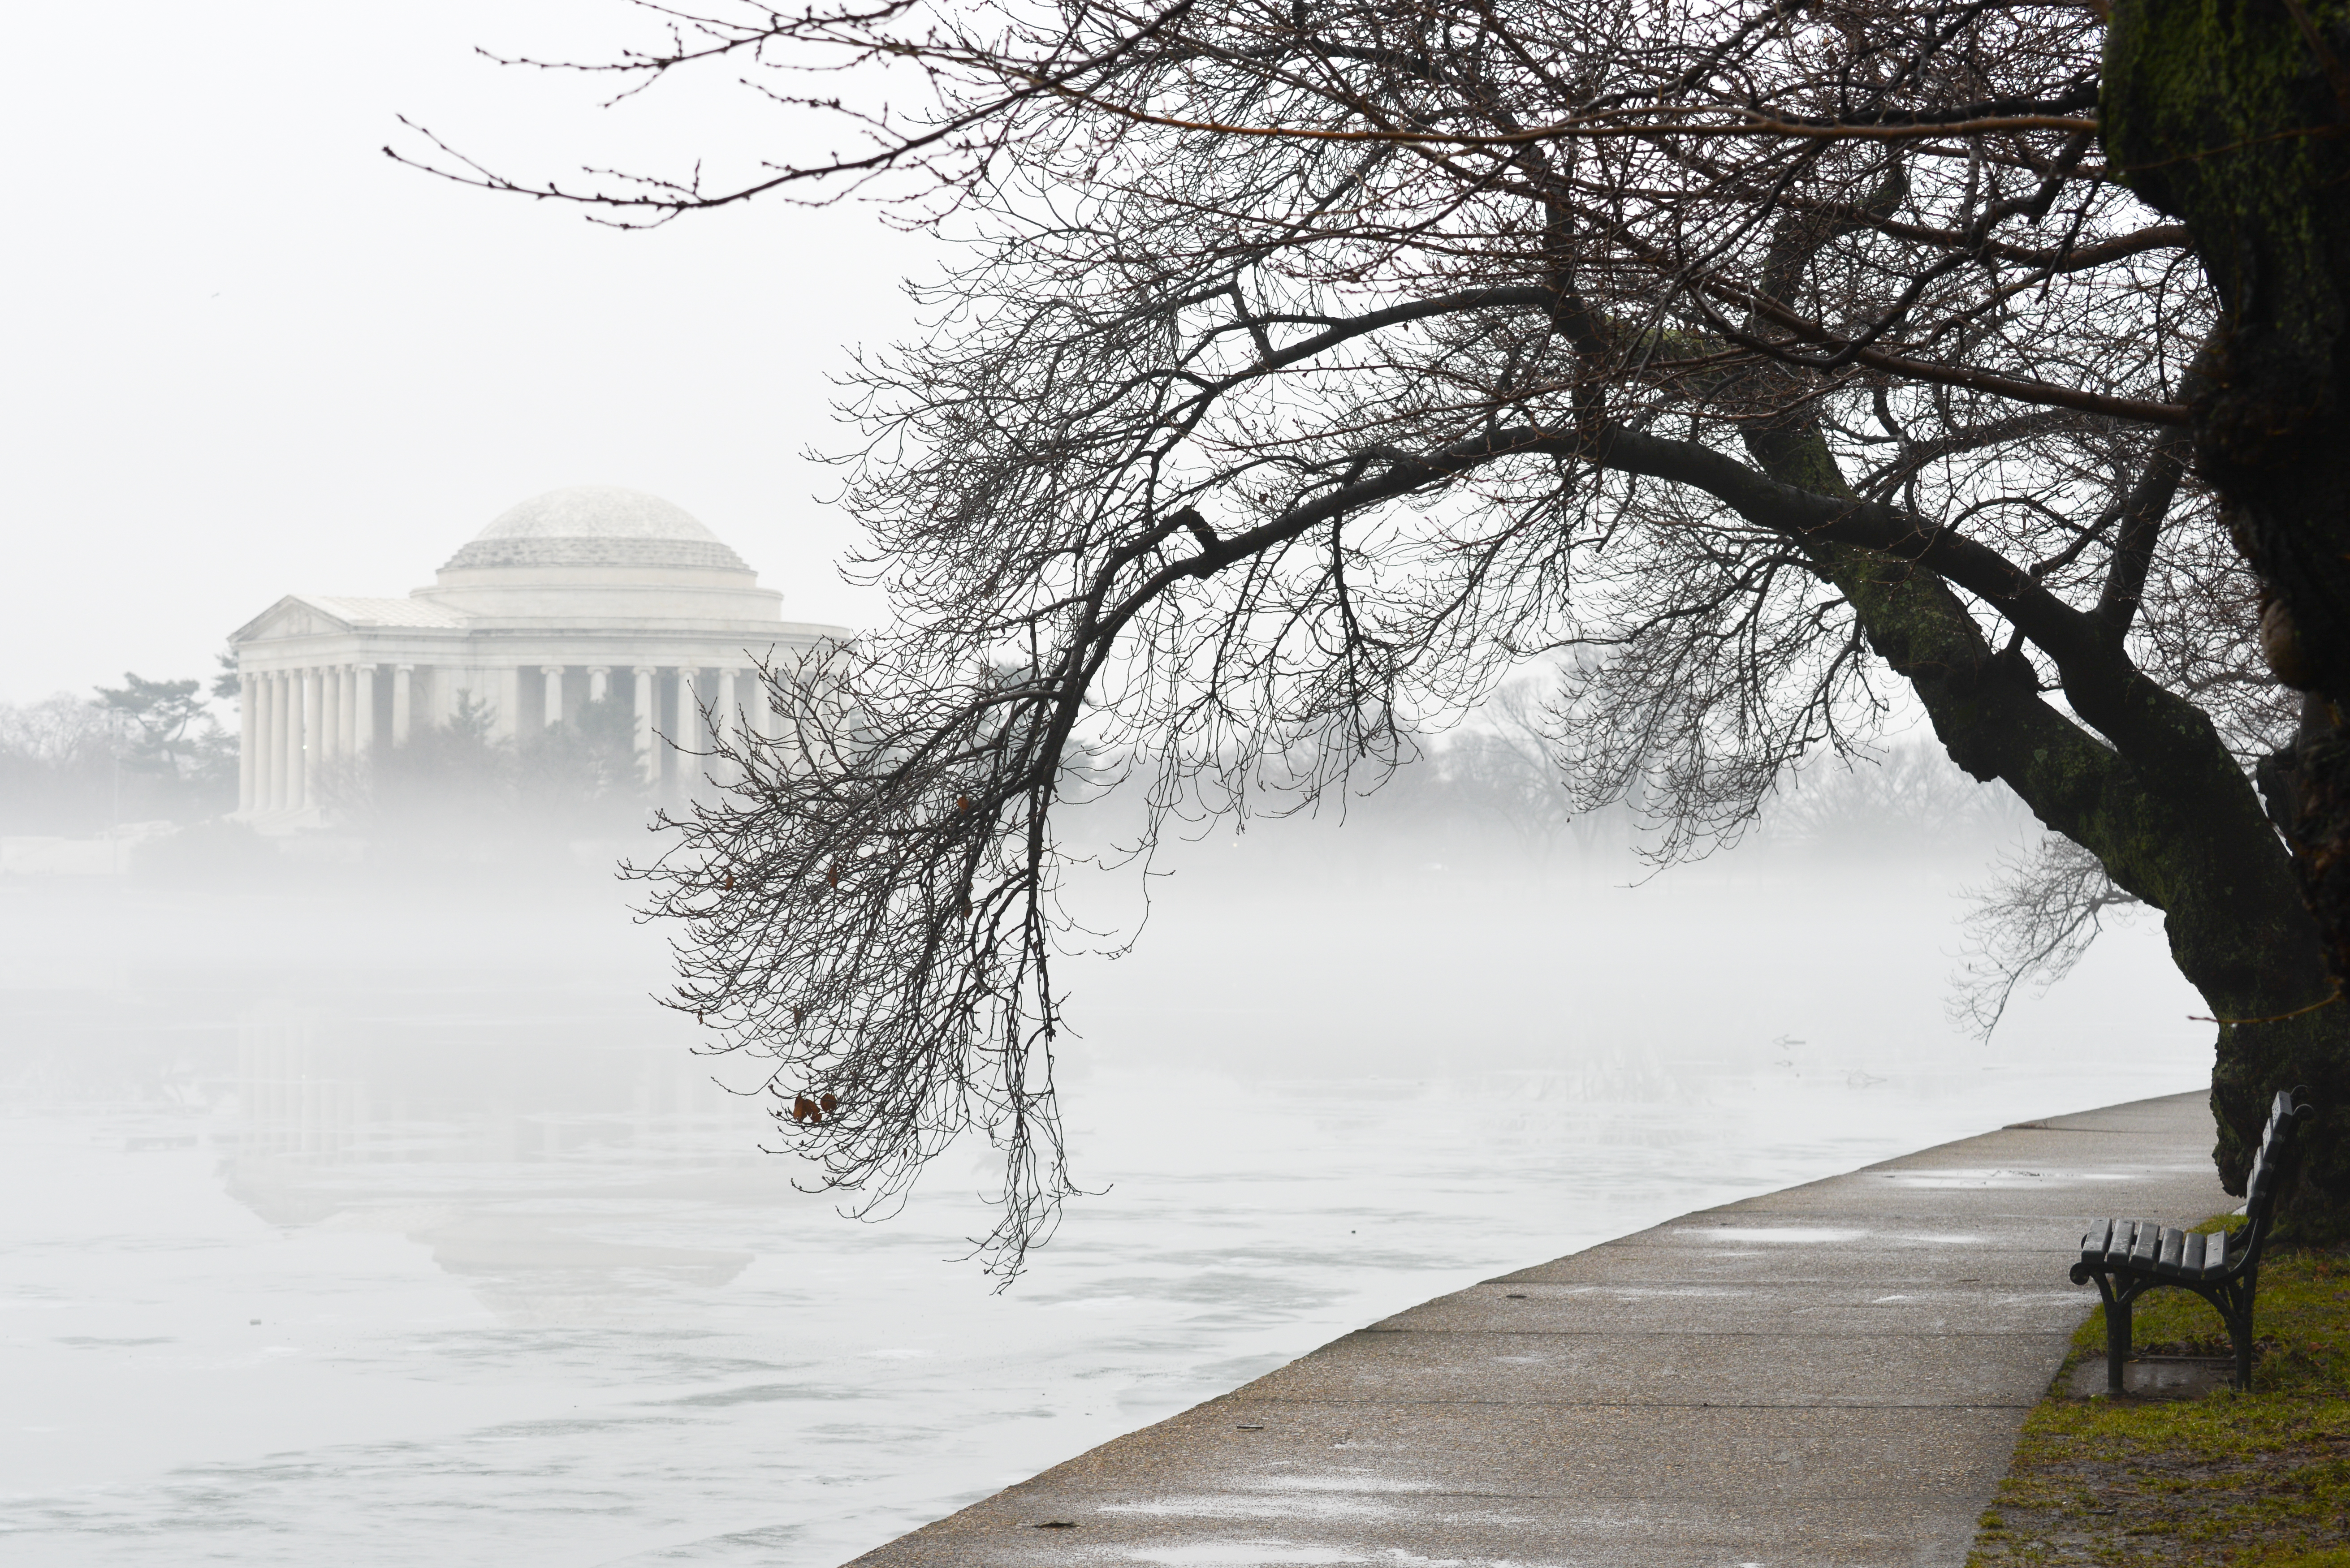 A dead tree hangs over a basin and a walkway. There is a domed monument in the background behind thick fog.